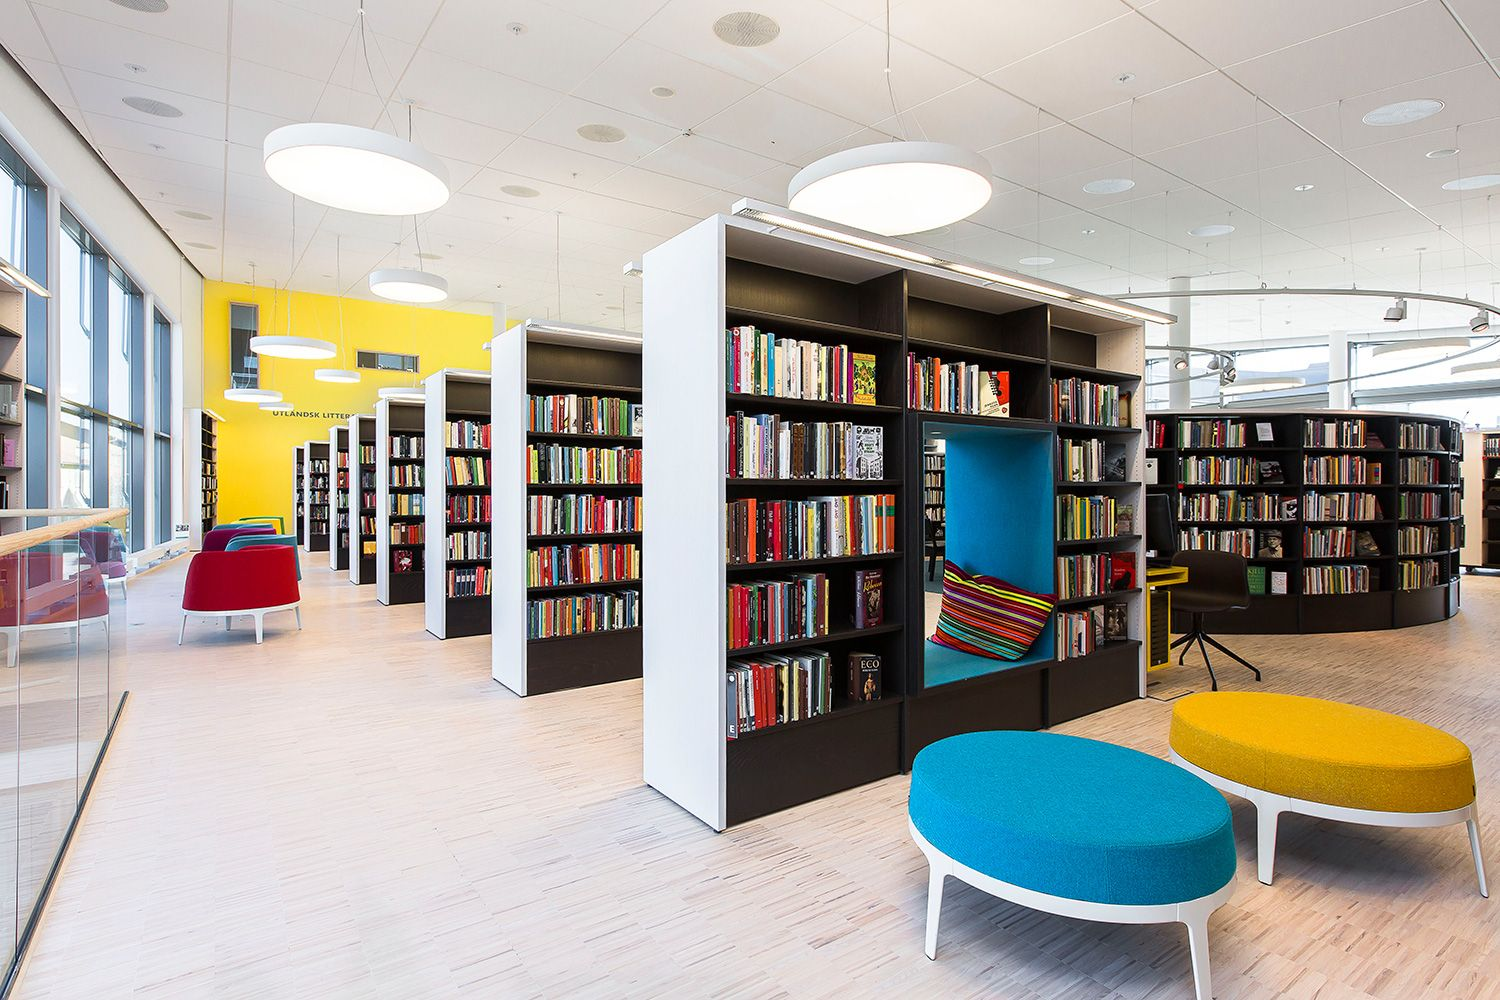 Public library interiors images for Architecture and interior design